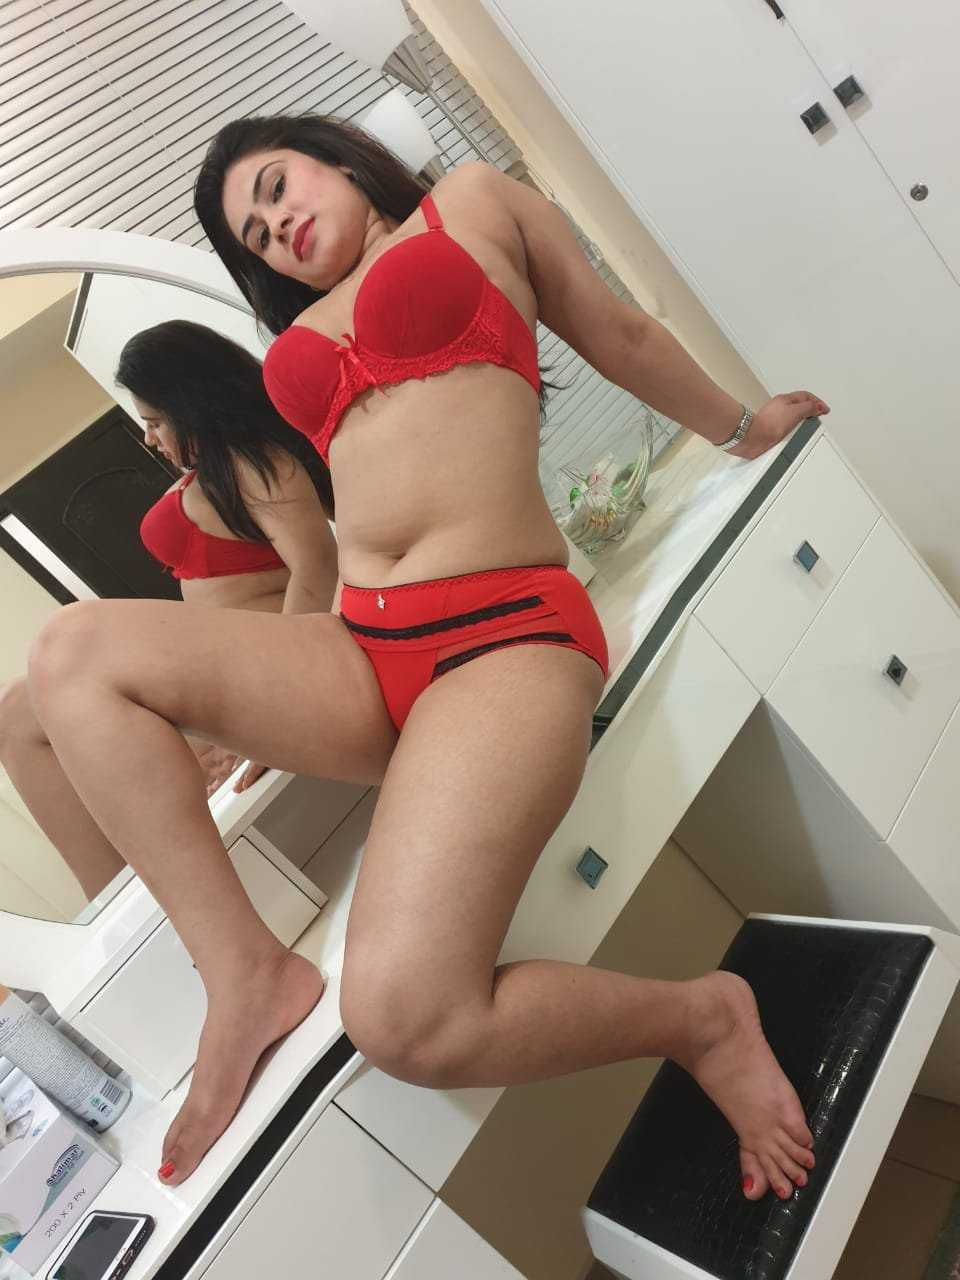 Try this for more raunchiness with Hyderabad Escorts  - Hire This Amazing Hyderabad Escorts, Who Is Perfect In Every Way.